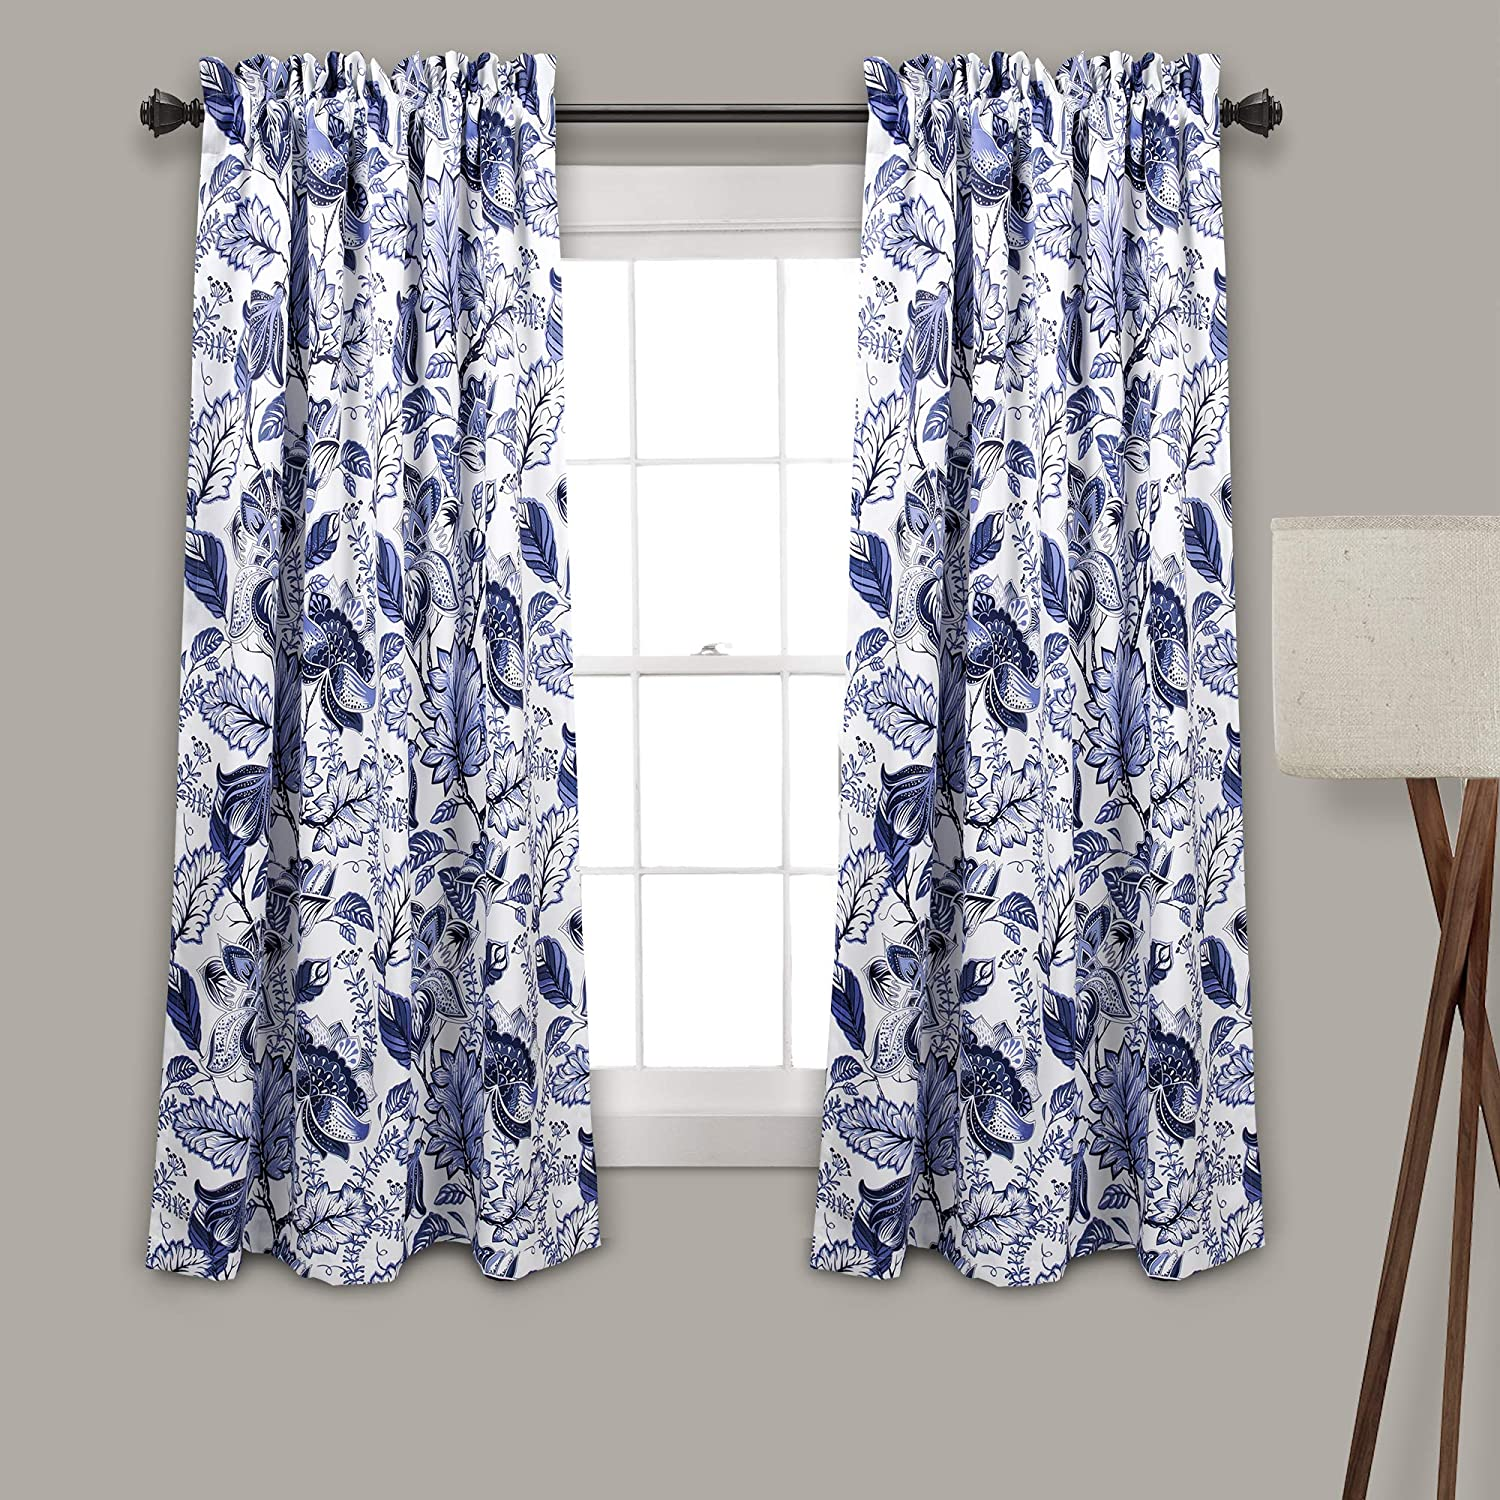 "Lush Decor Cynthia Jacobean Darkening Window Curtains Panel Set for Living, Dining Room, Bedroom (Pair), 63"" L, Blue"